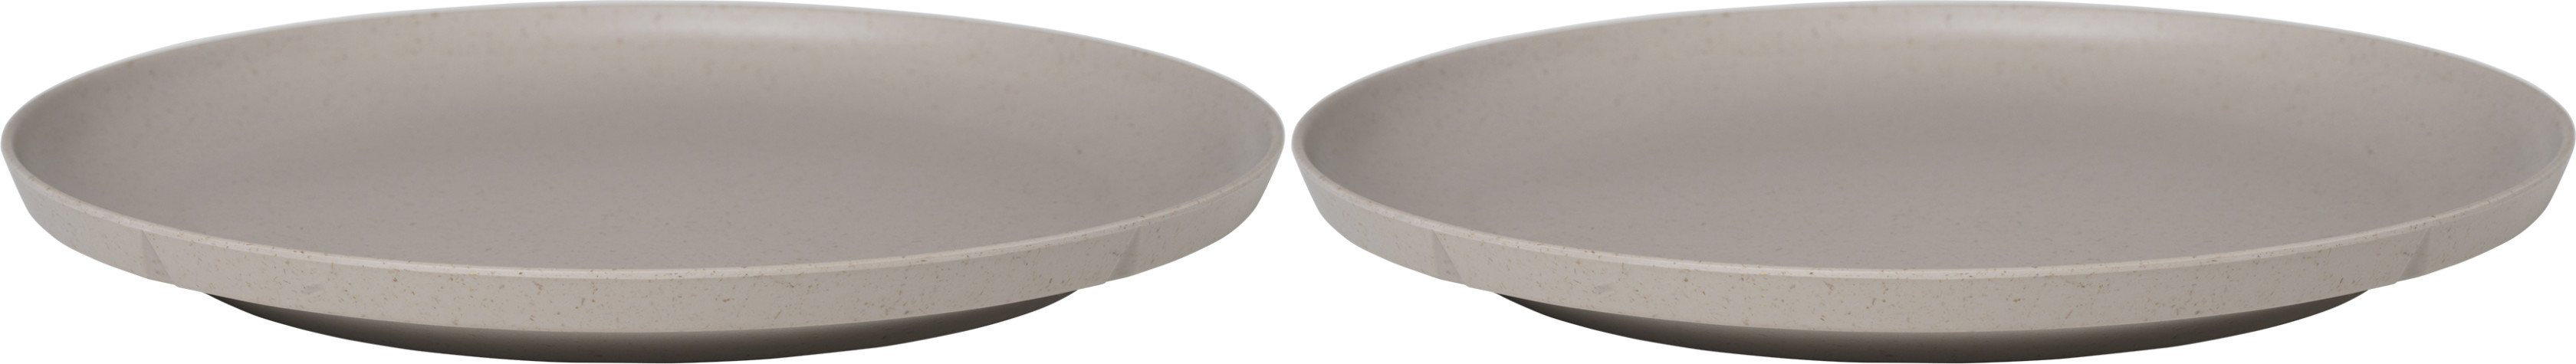 Grand Cru Take Plate 2 pcs. Ø26 cm Sand, Rosendahl